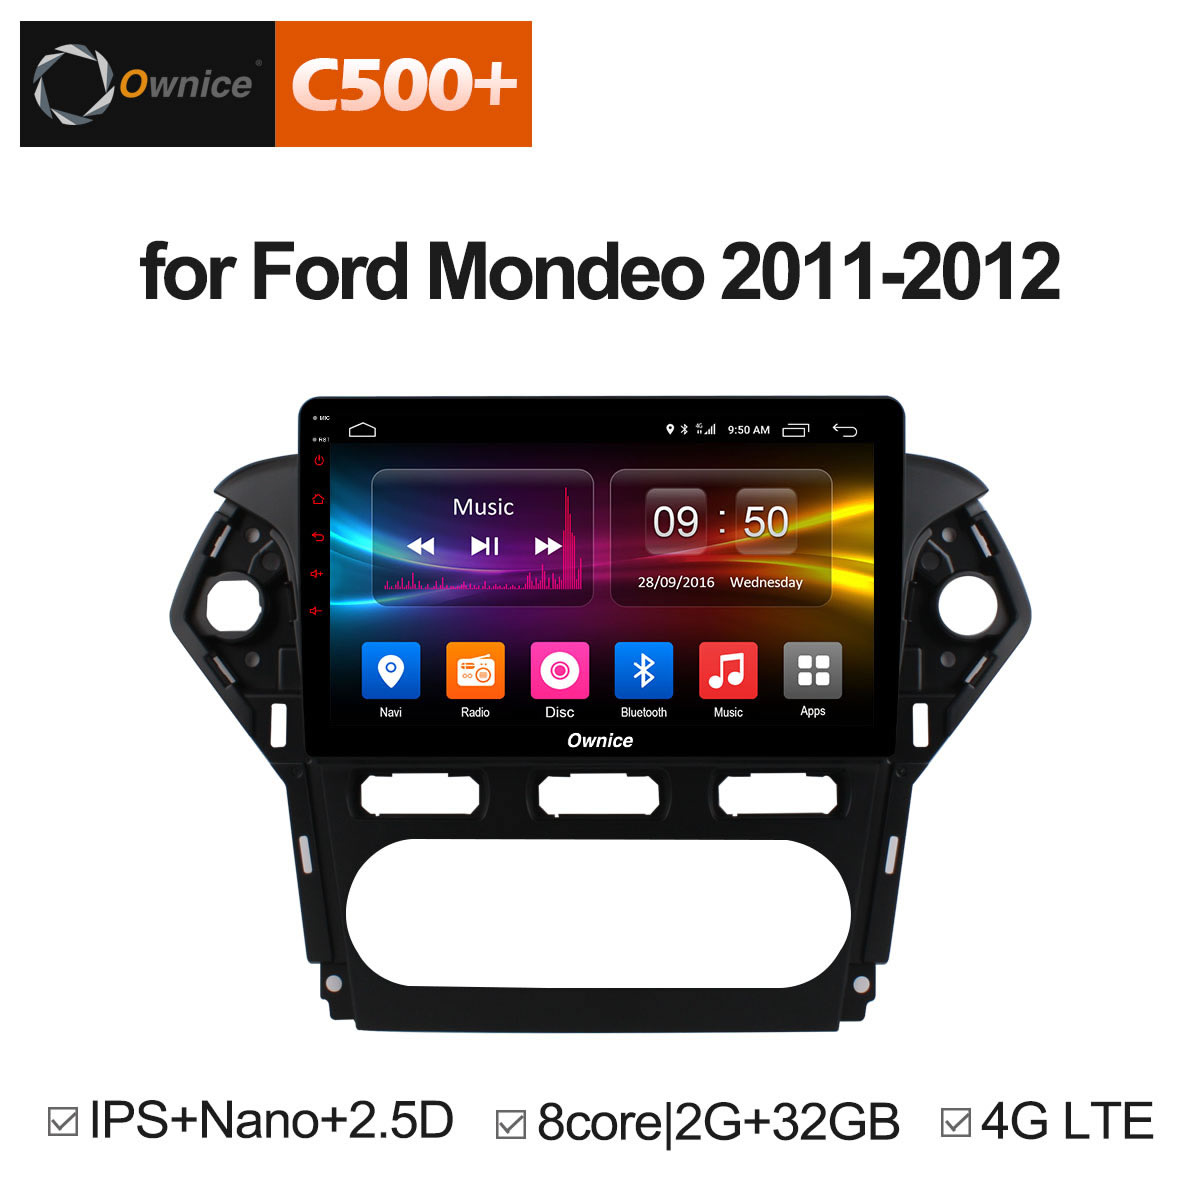 Ownice 10.1 C500 + G10 Octa base Android 8.1 2 gb RAM Voiture DVD GPS Navi Radio Pour Ford mondeo 2011-2012 Headunit Stéréo 4g LTE